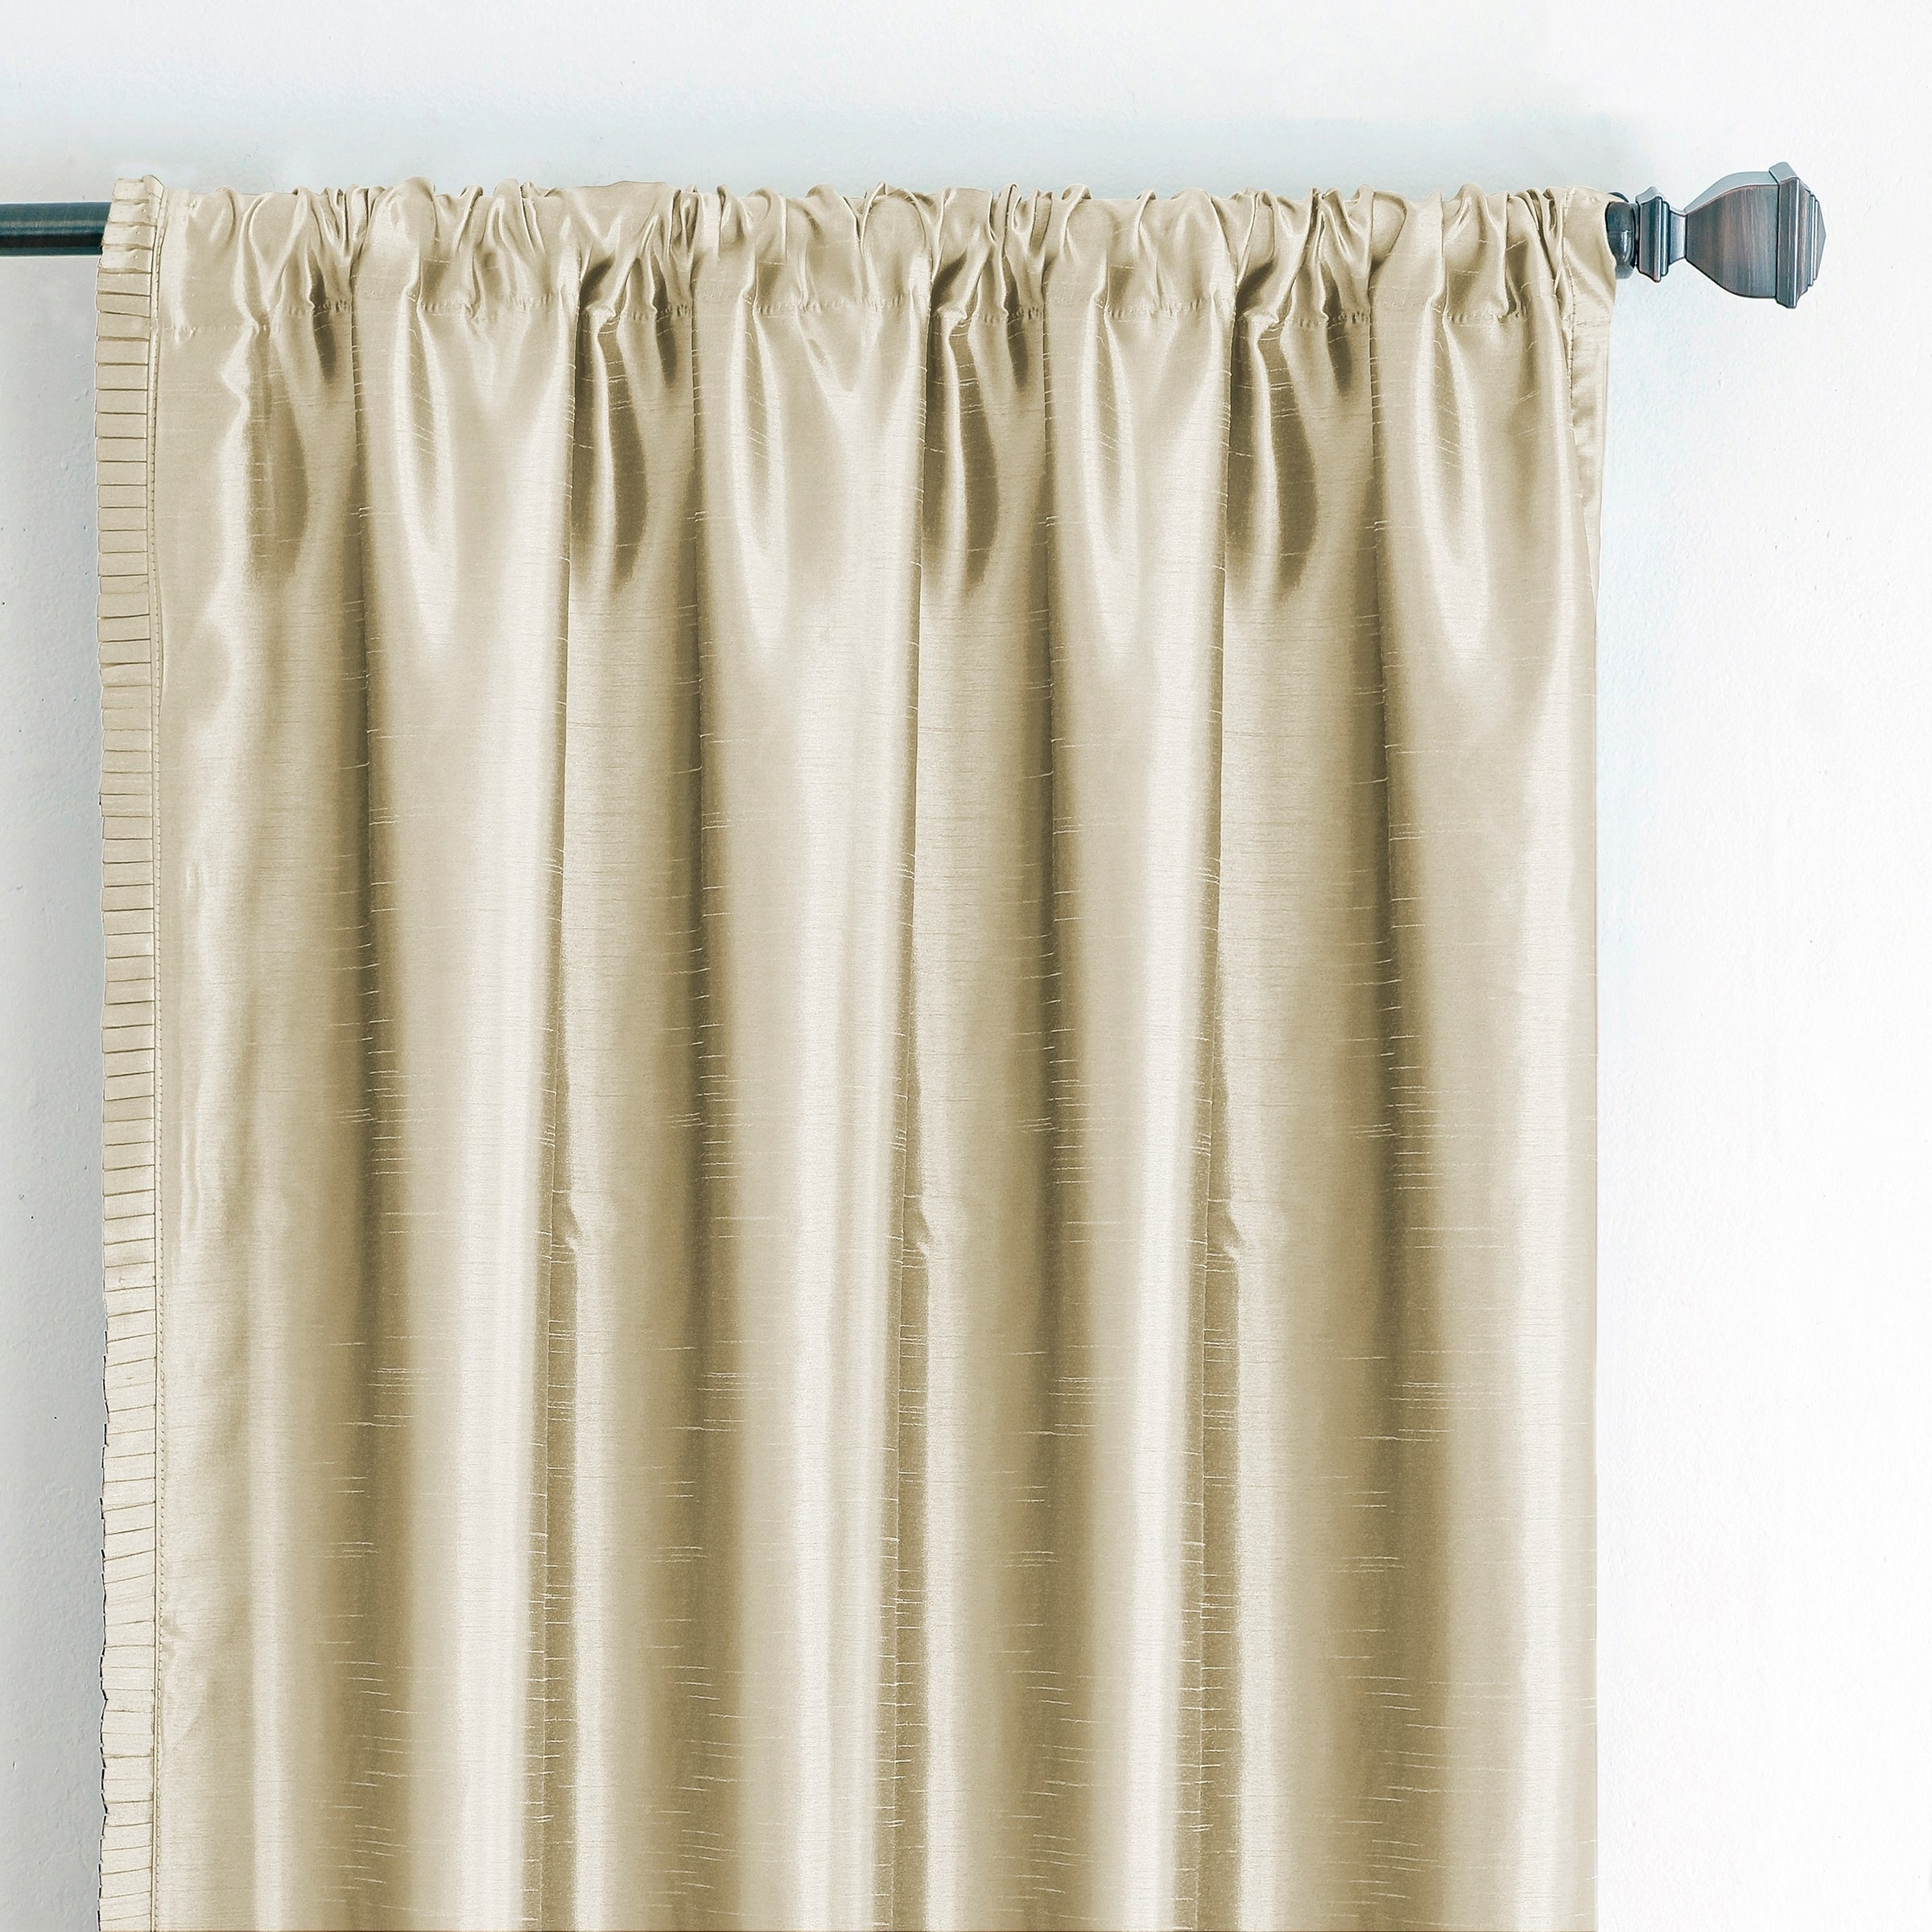 Elrene Versailles Pleated Blackout Curtain Panel Regarding Elrene Versailles Pleated Blackout Curtain Panels (View 4 of 20)